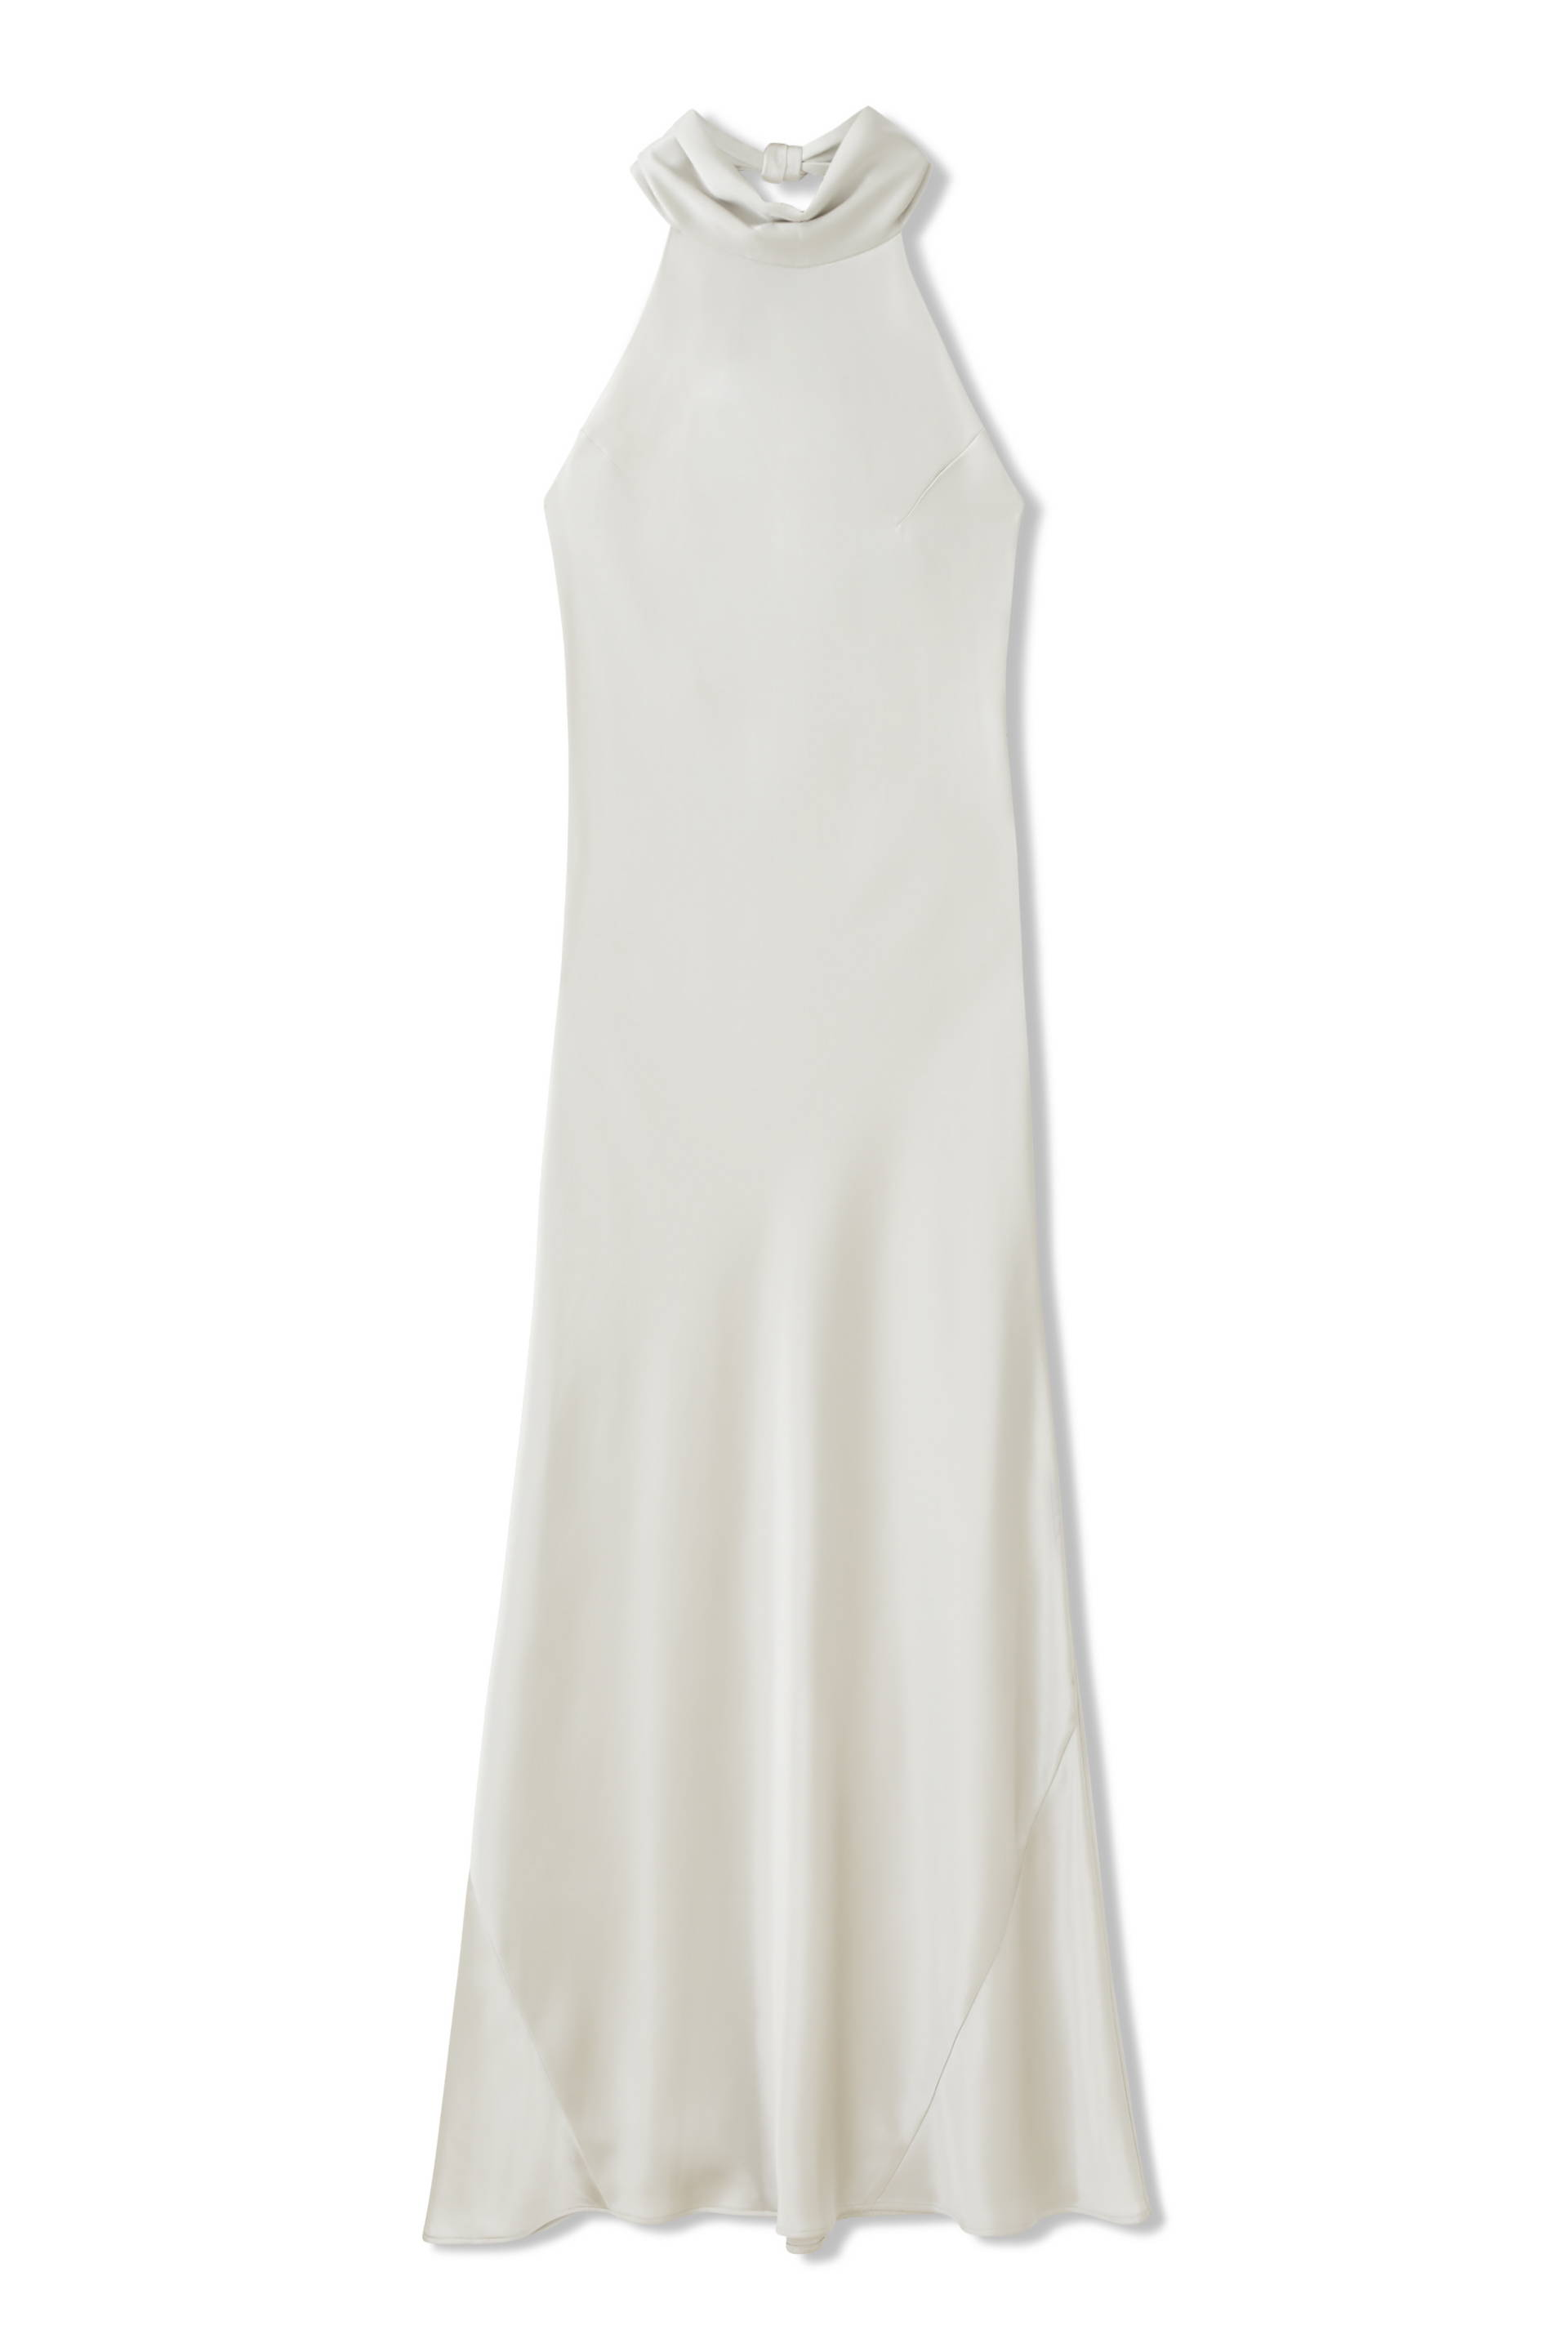 Galvan London Bridal High Neck Skirt White Satin Dress